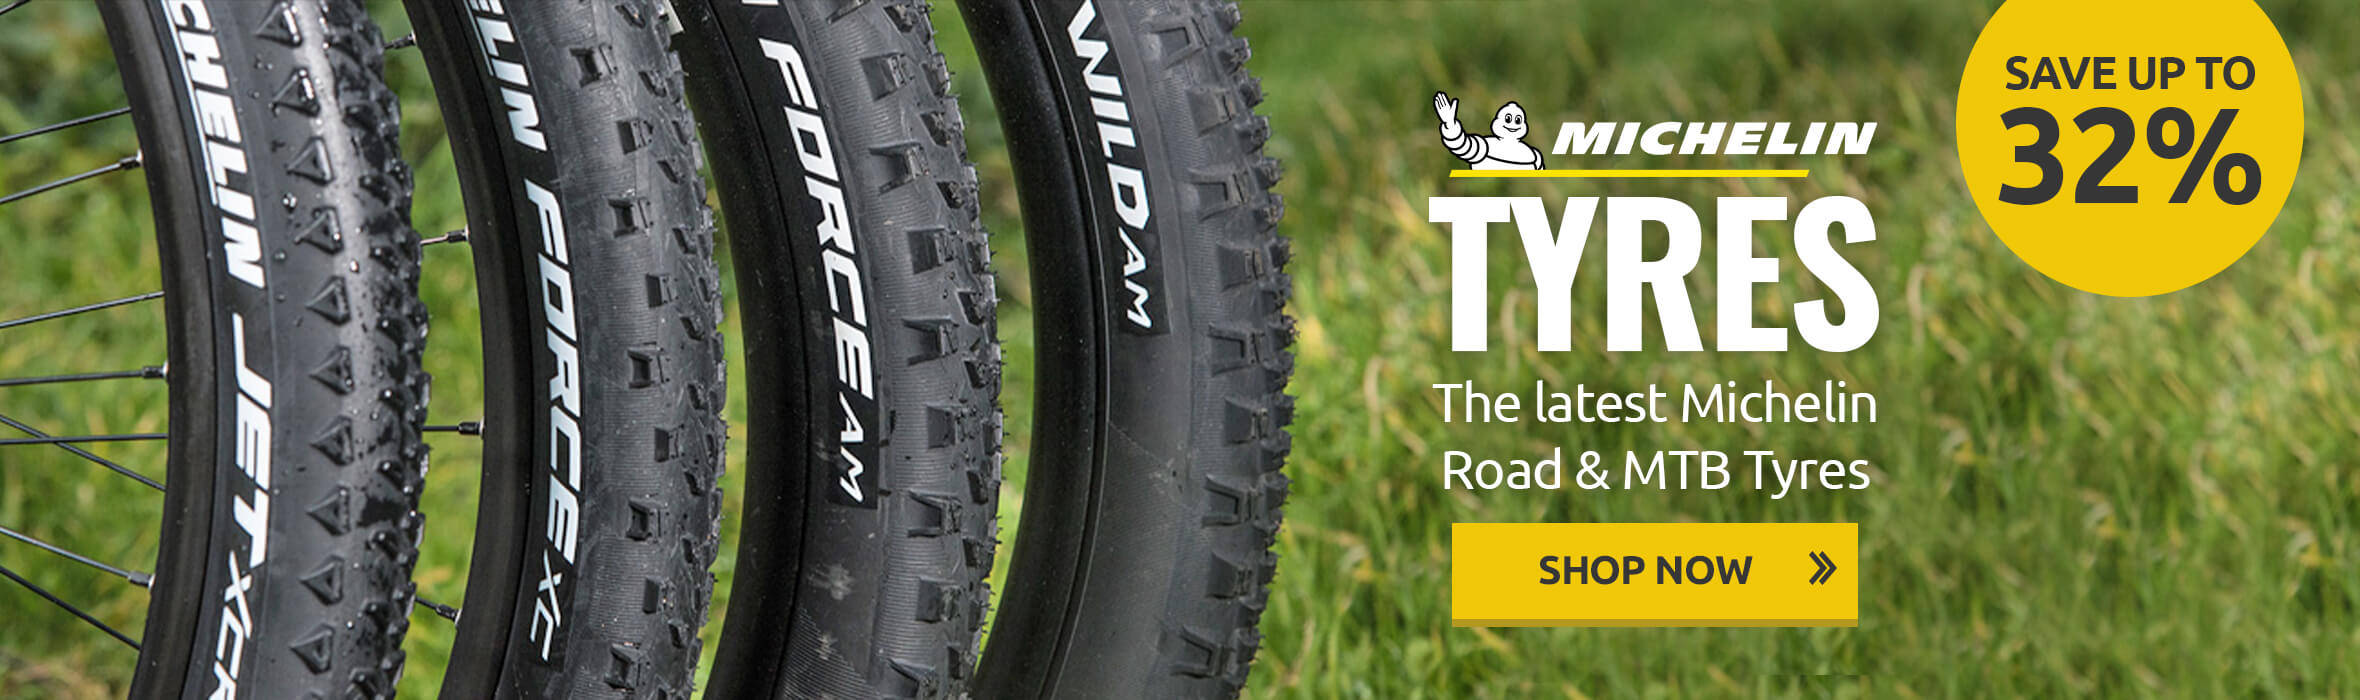 Save up to 32% on Michelin Tyres